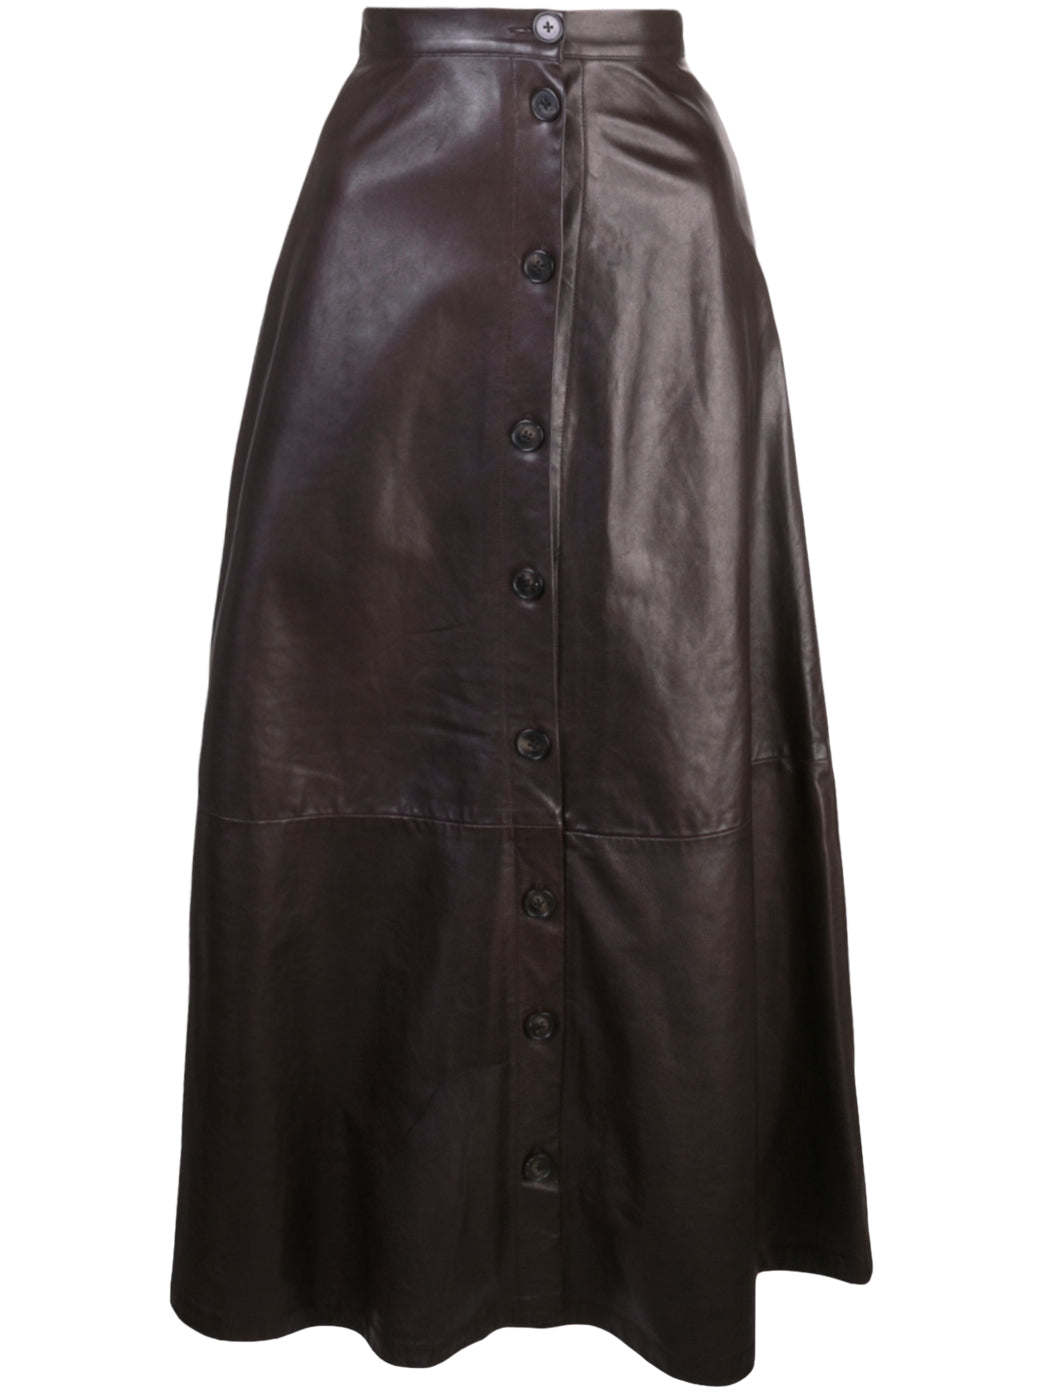 MIDI SKIRT IN LEATHER